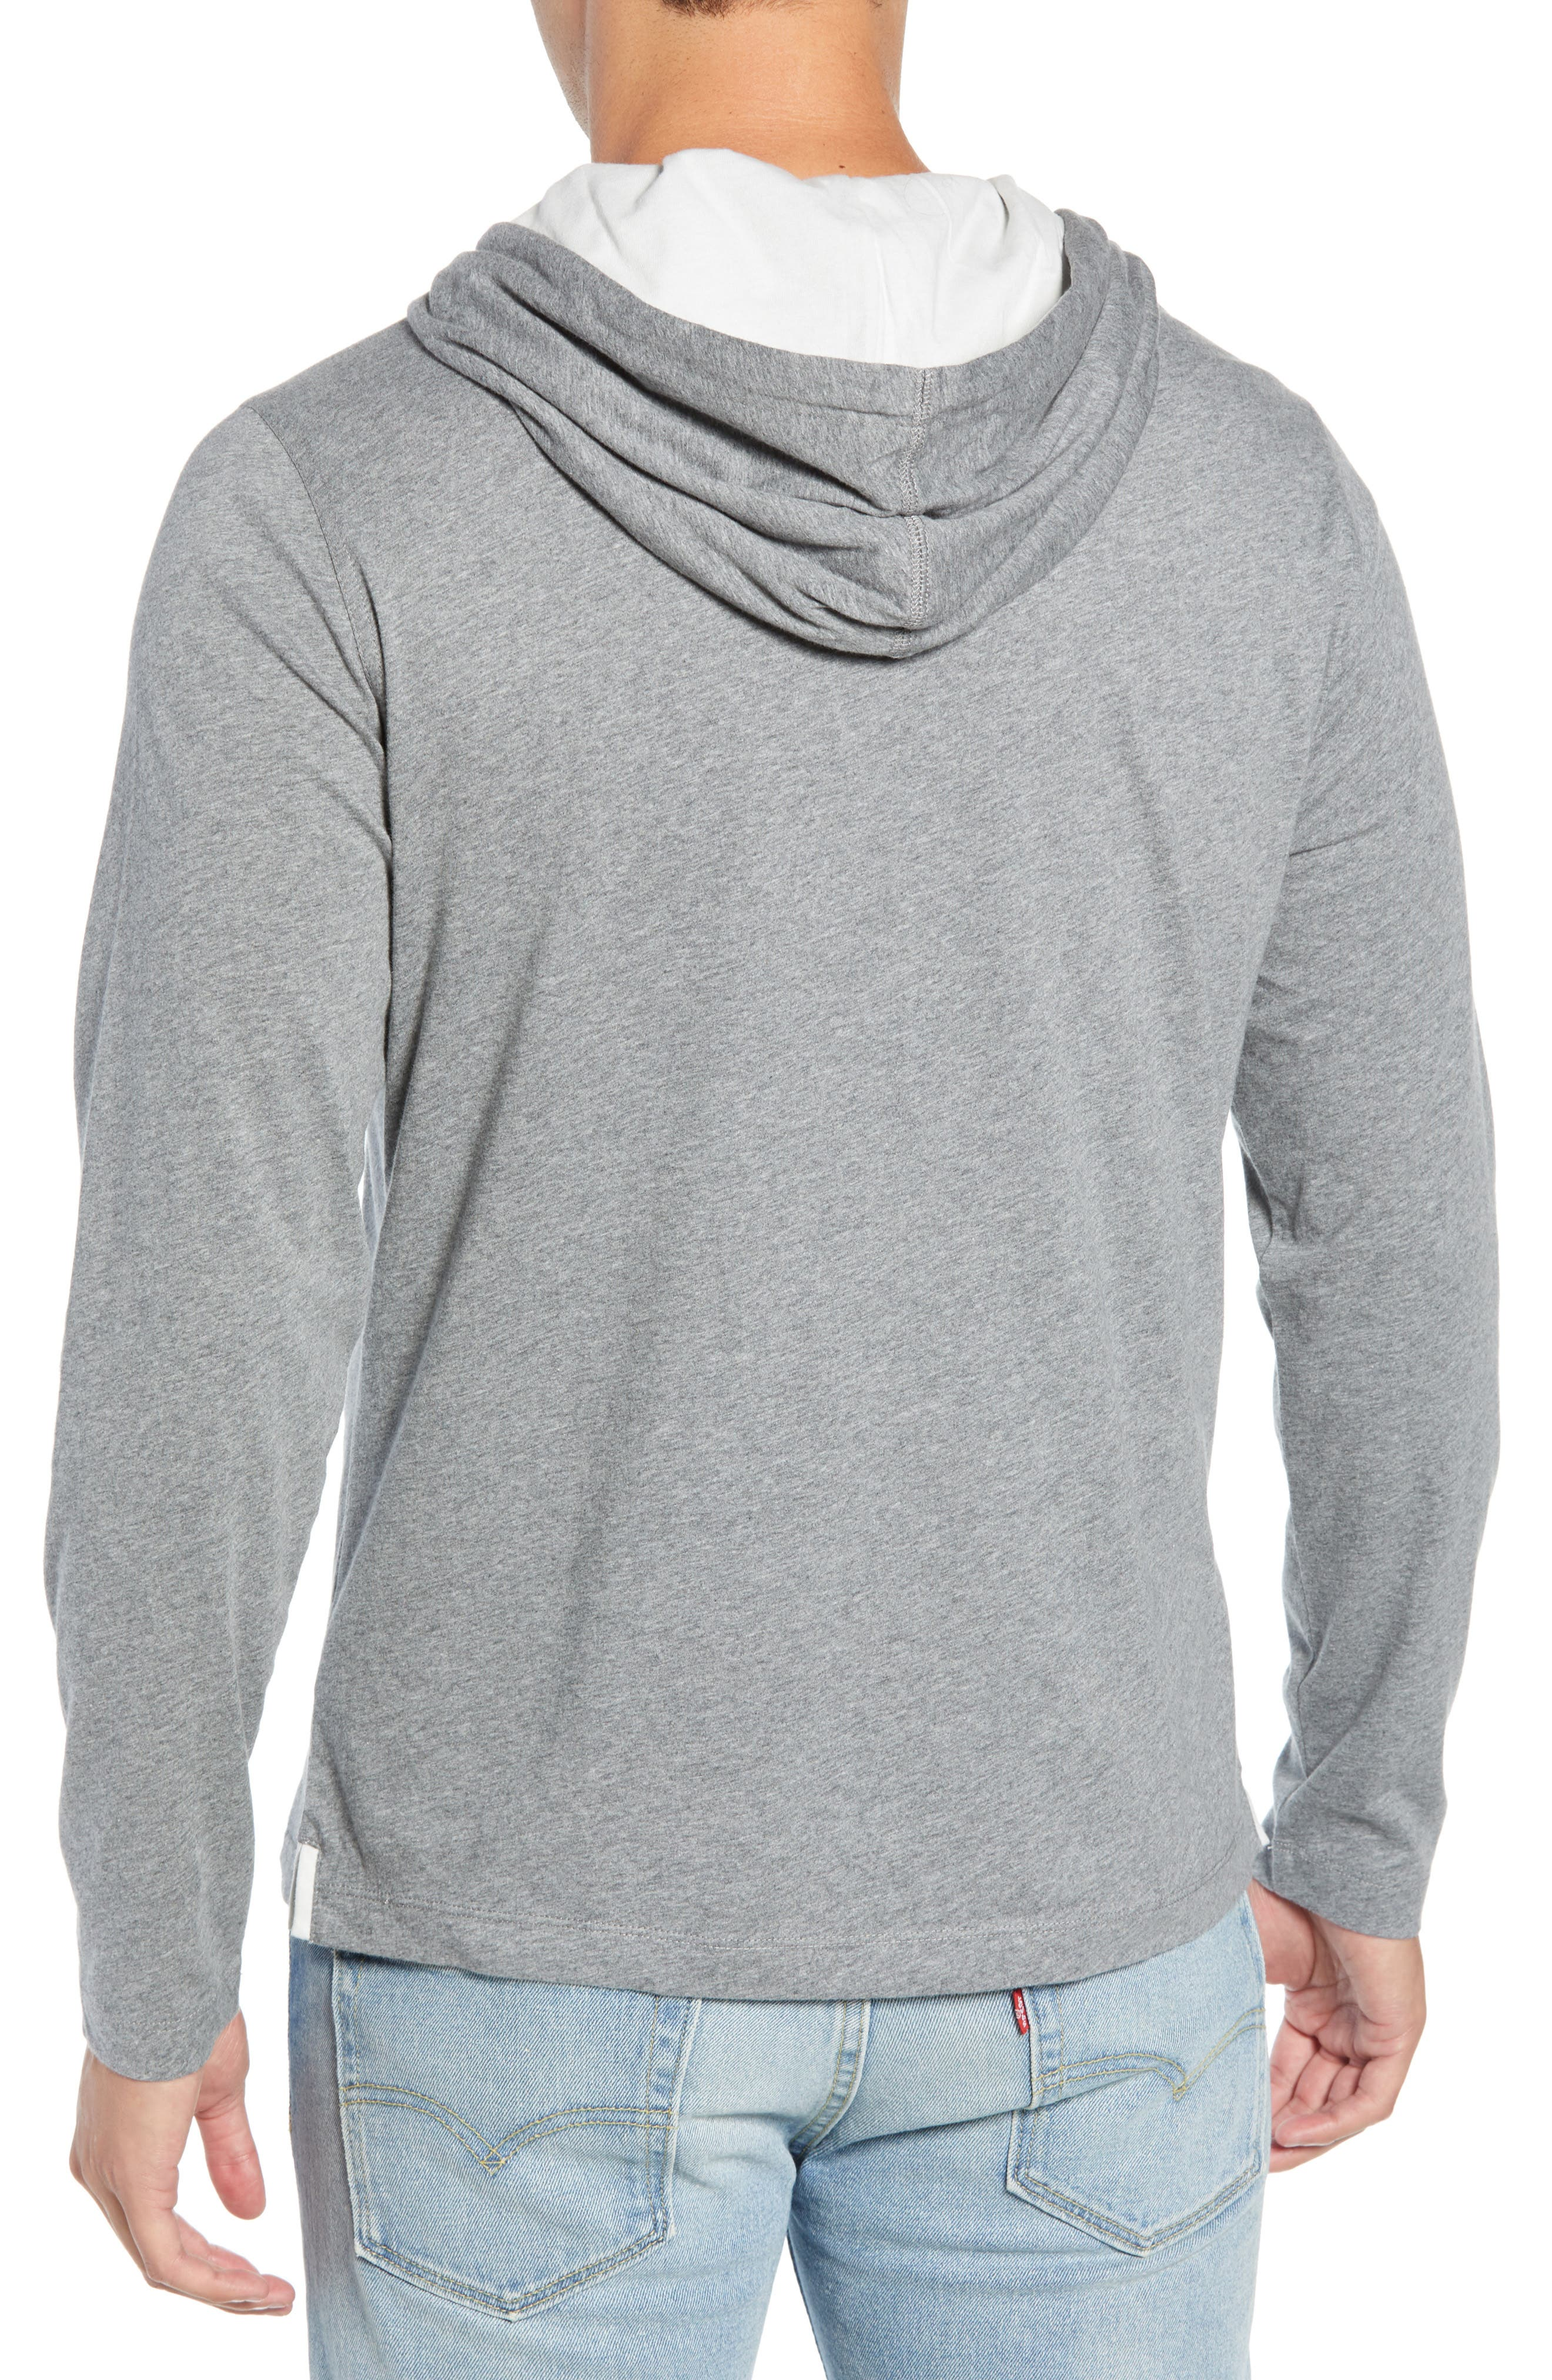 Carl Pullover Hoodie,                             Alternate thumbnail 2, color,                             MID GREY